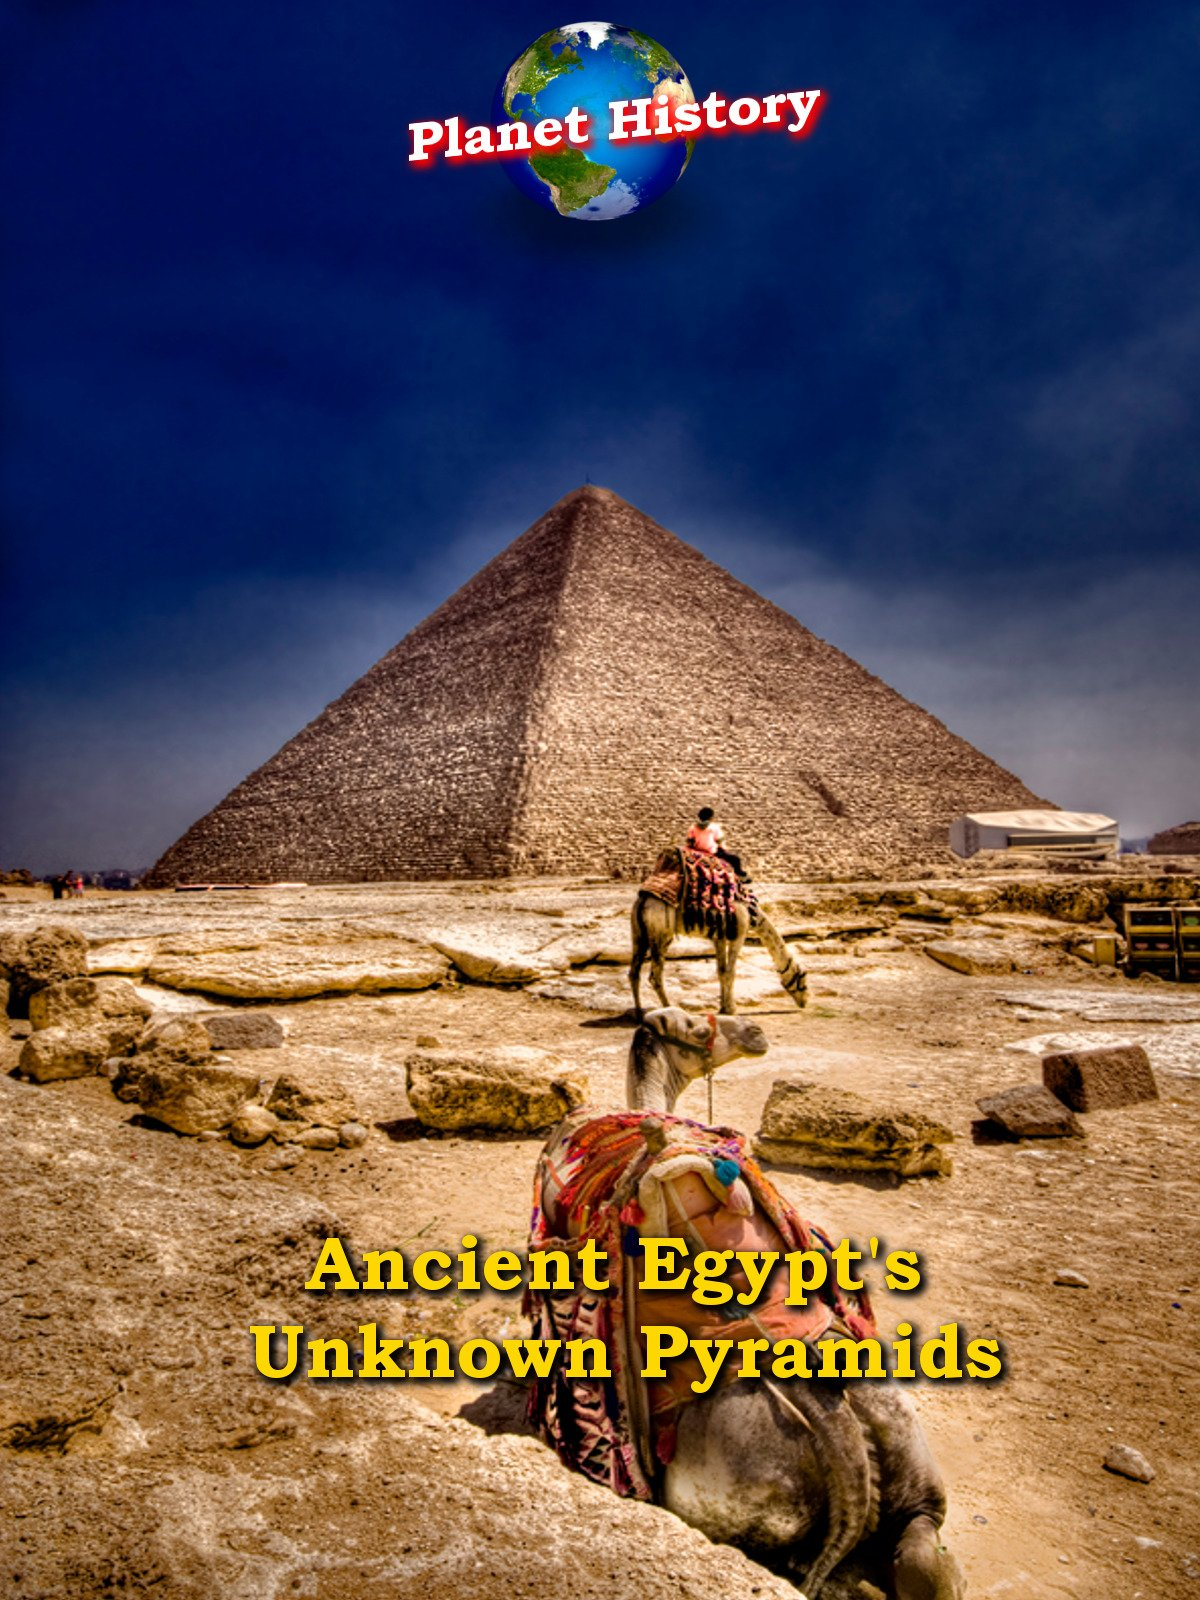 Ancient Egypt's Unknown Pyramids